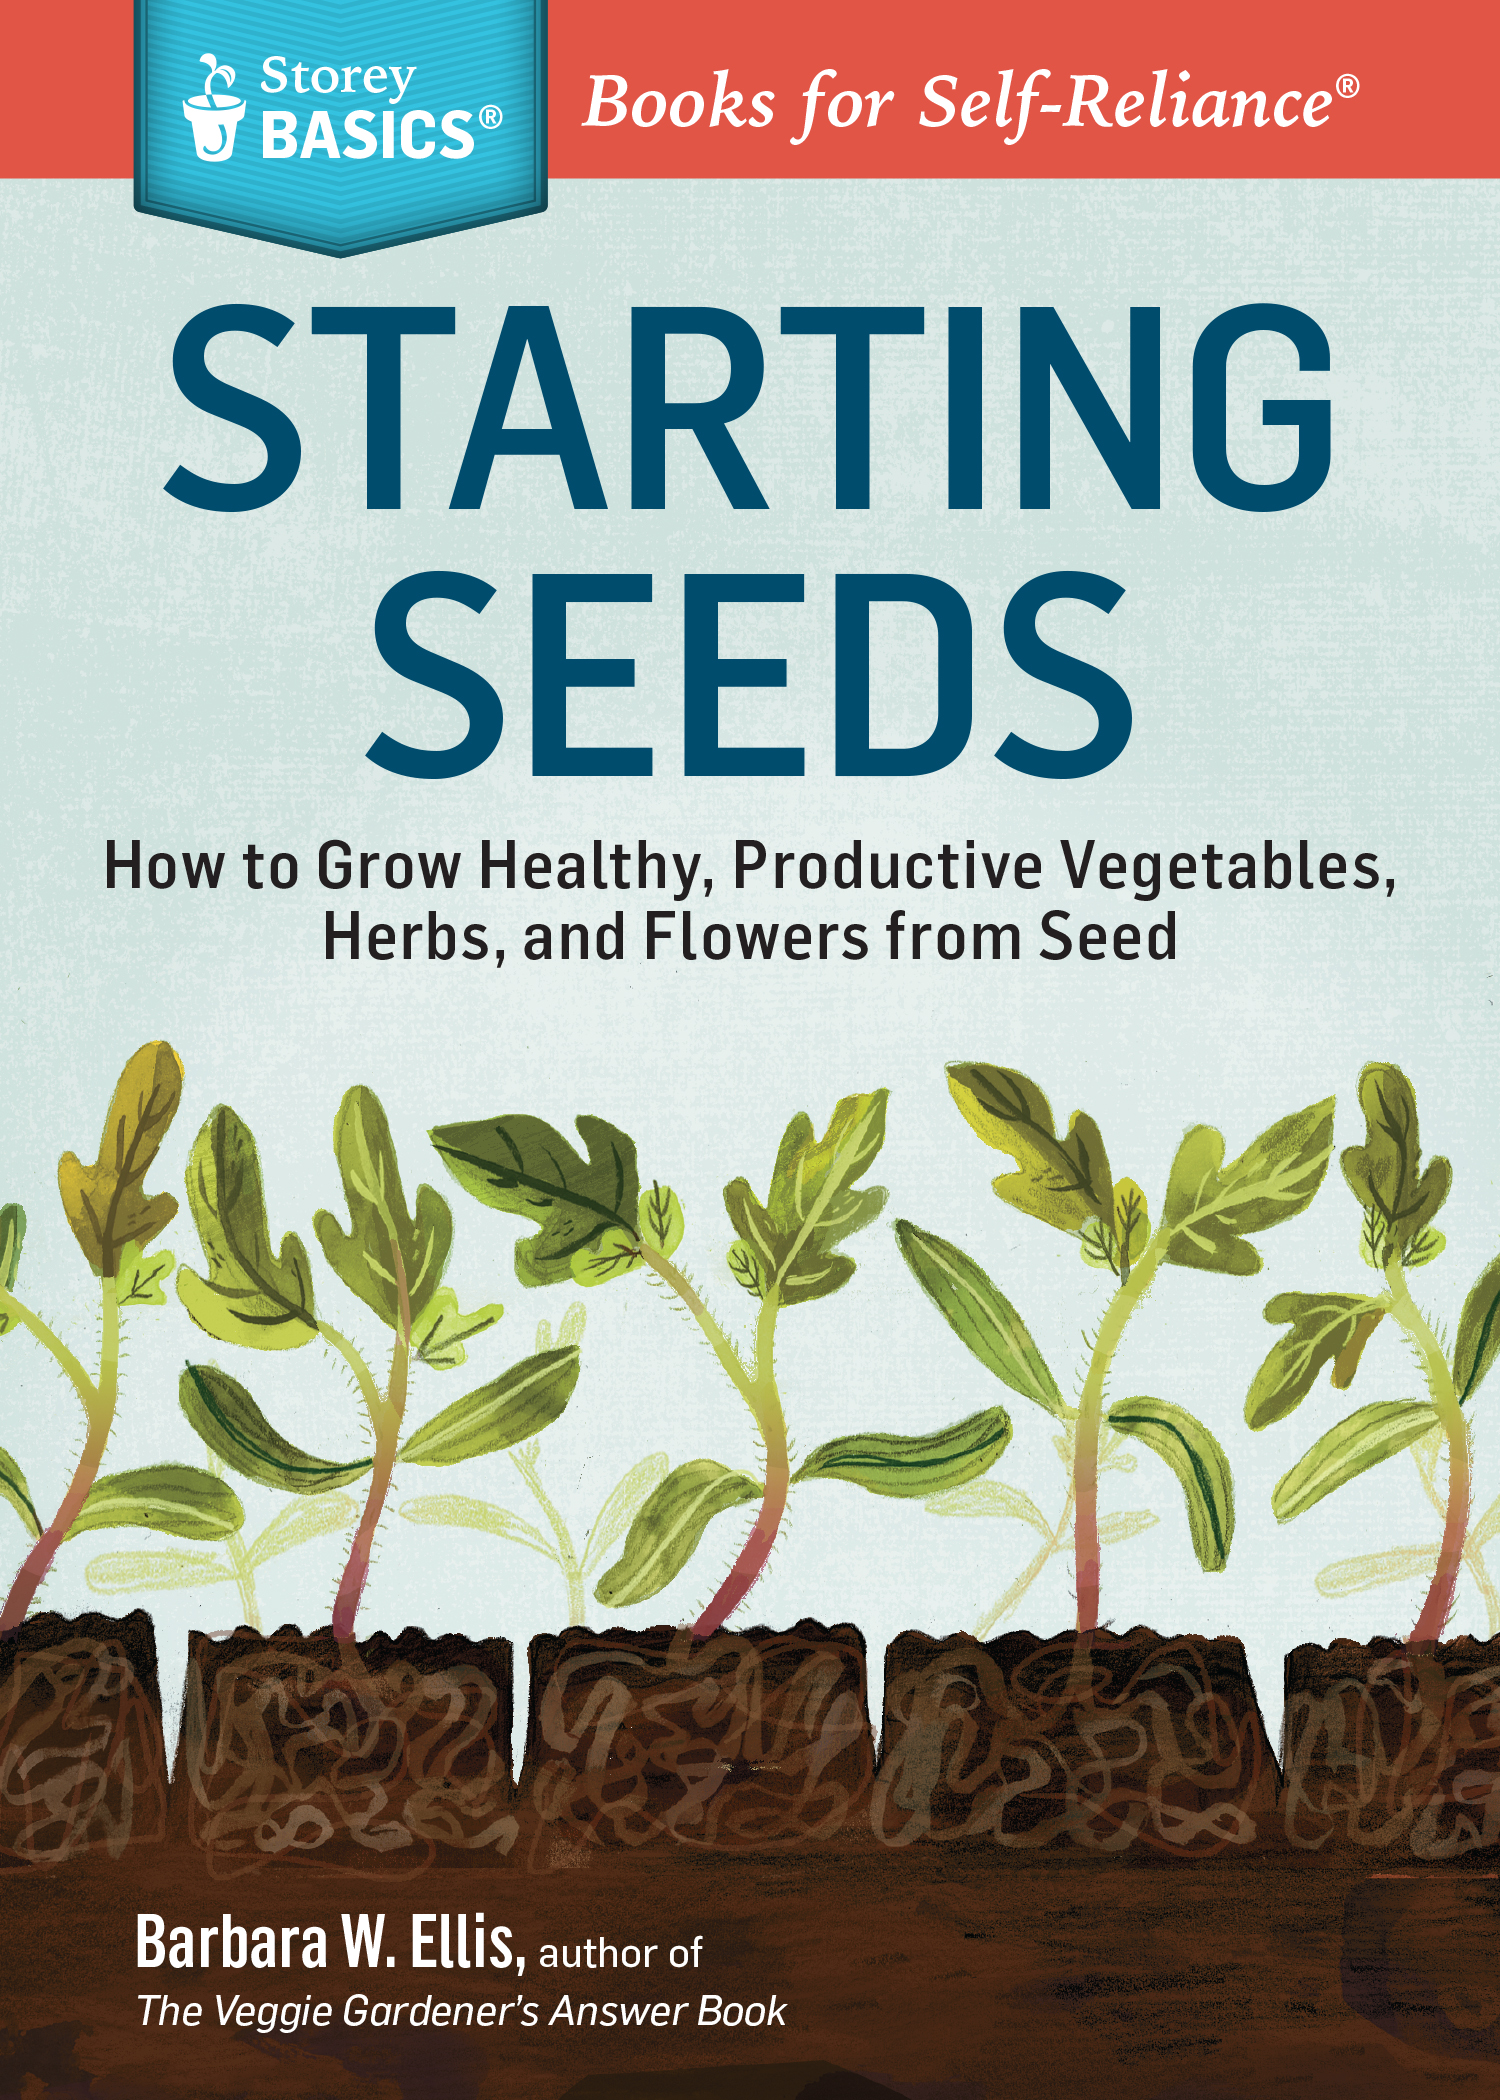 Starting Seeds How to Grow Healthy, Productive Vegetables, Herbs, and Flowers from Seed. A Storey BASICS® Title - Barbara W. Ellis